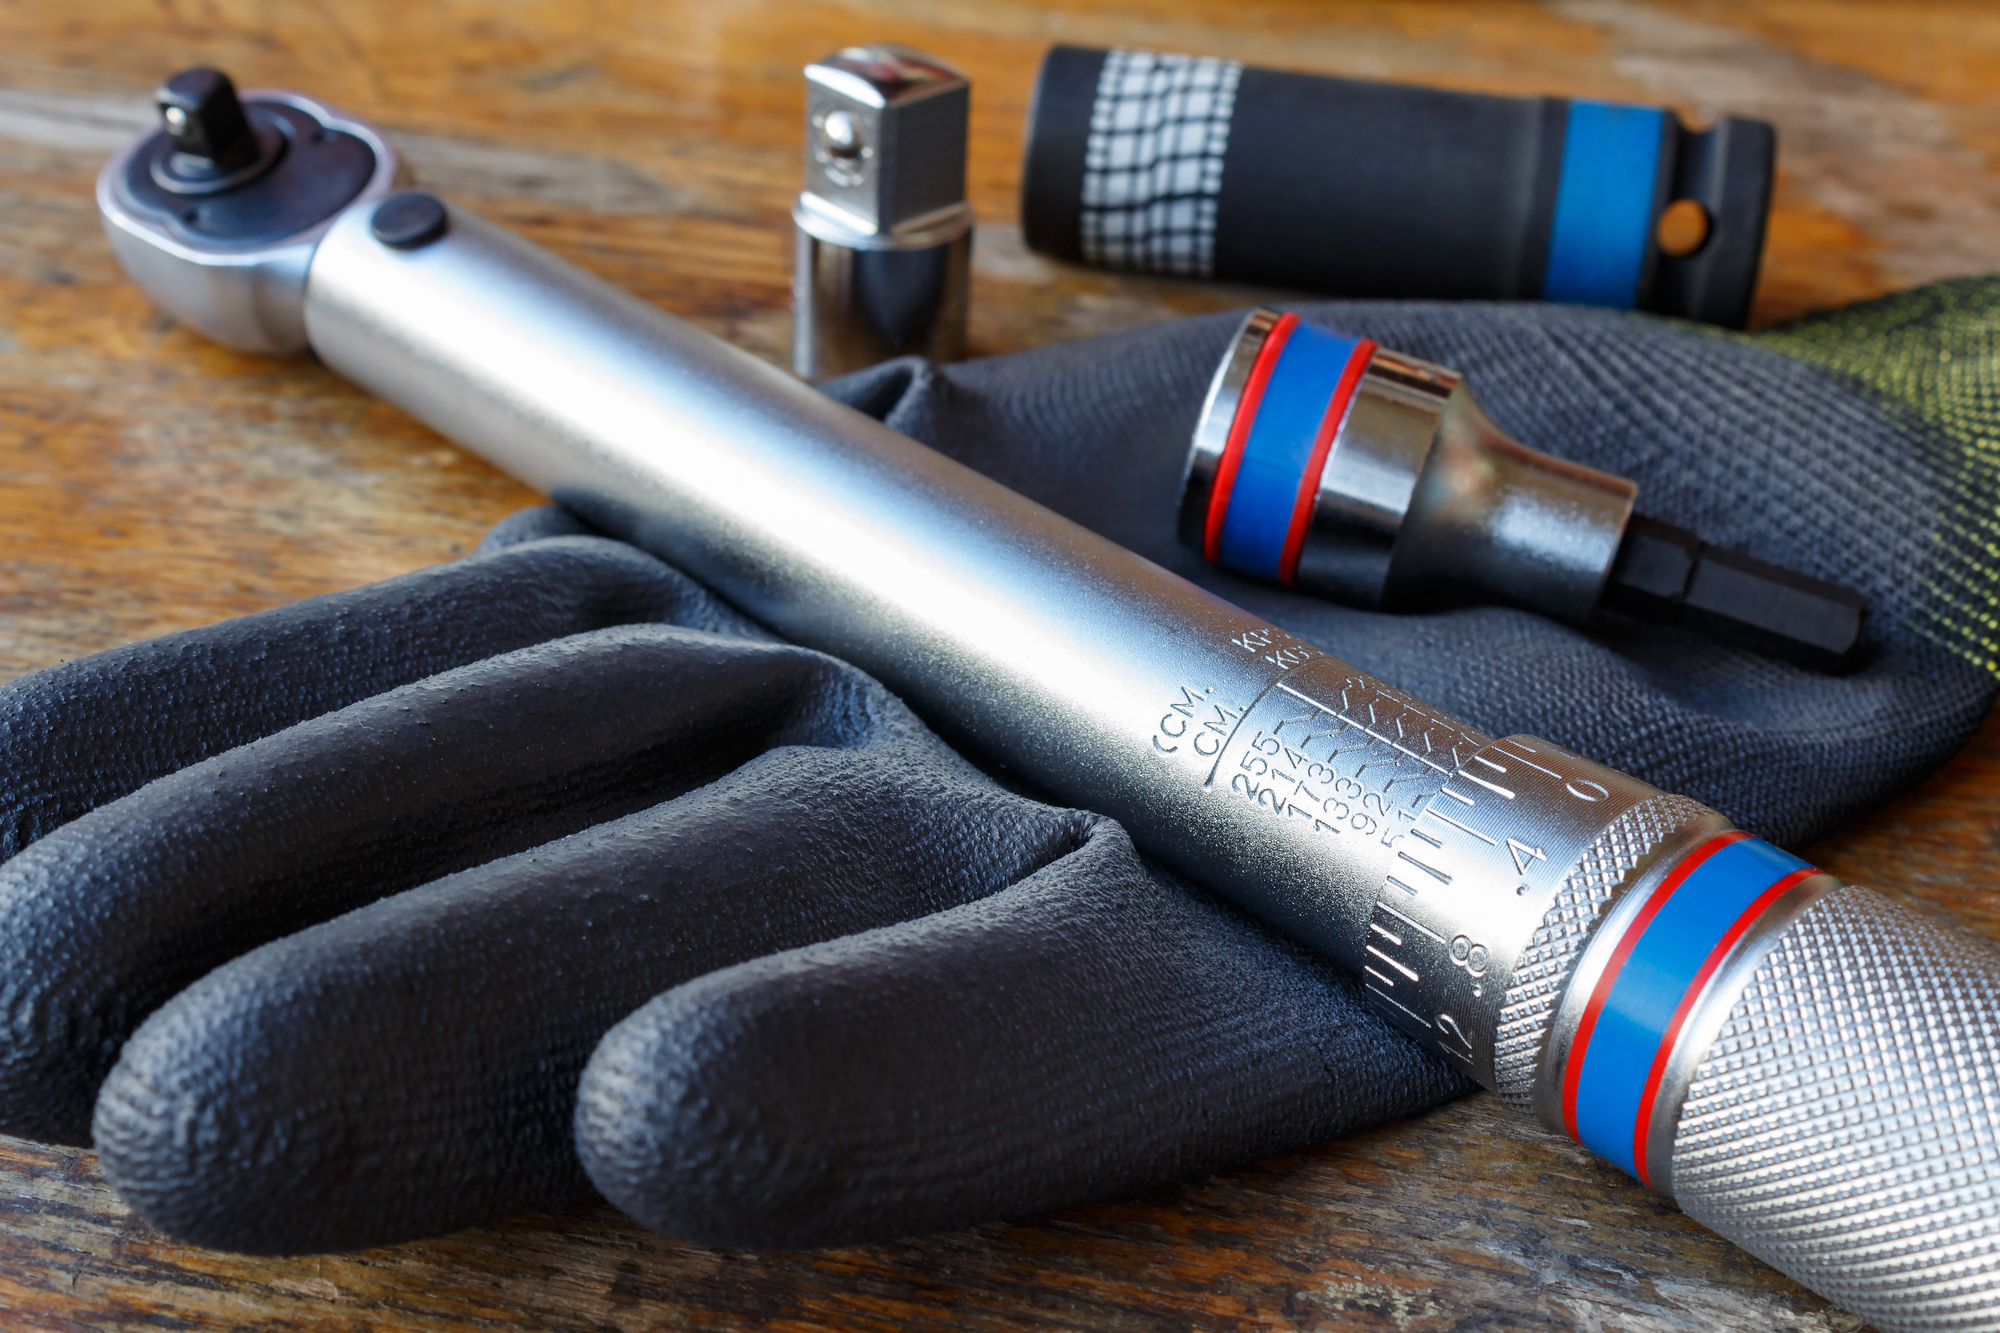 Buyer's Guide And Review: Top 10 Best Torque Wrenches